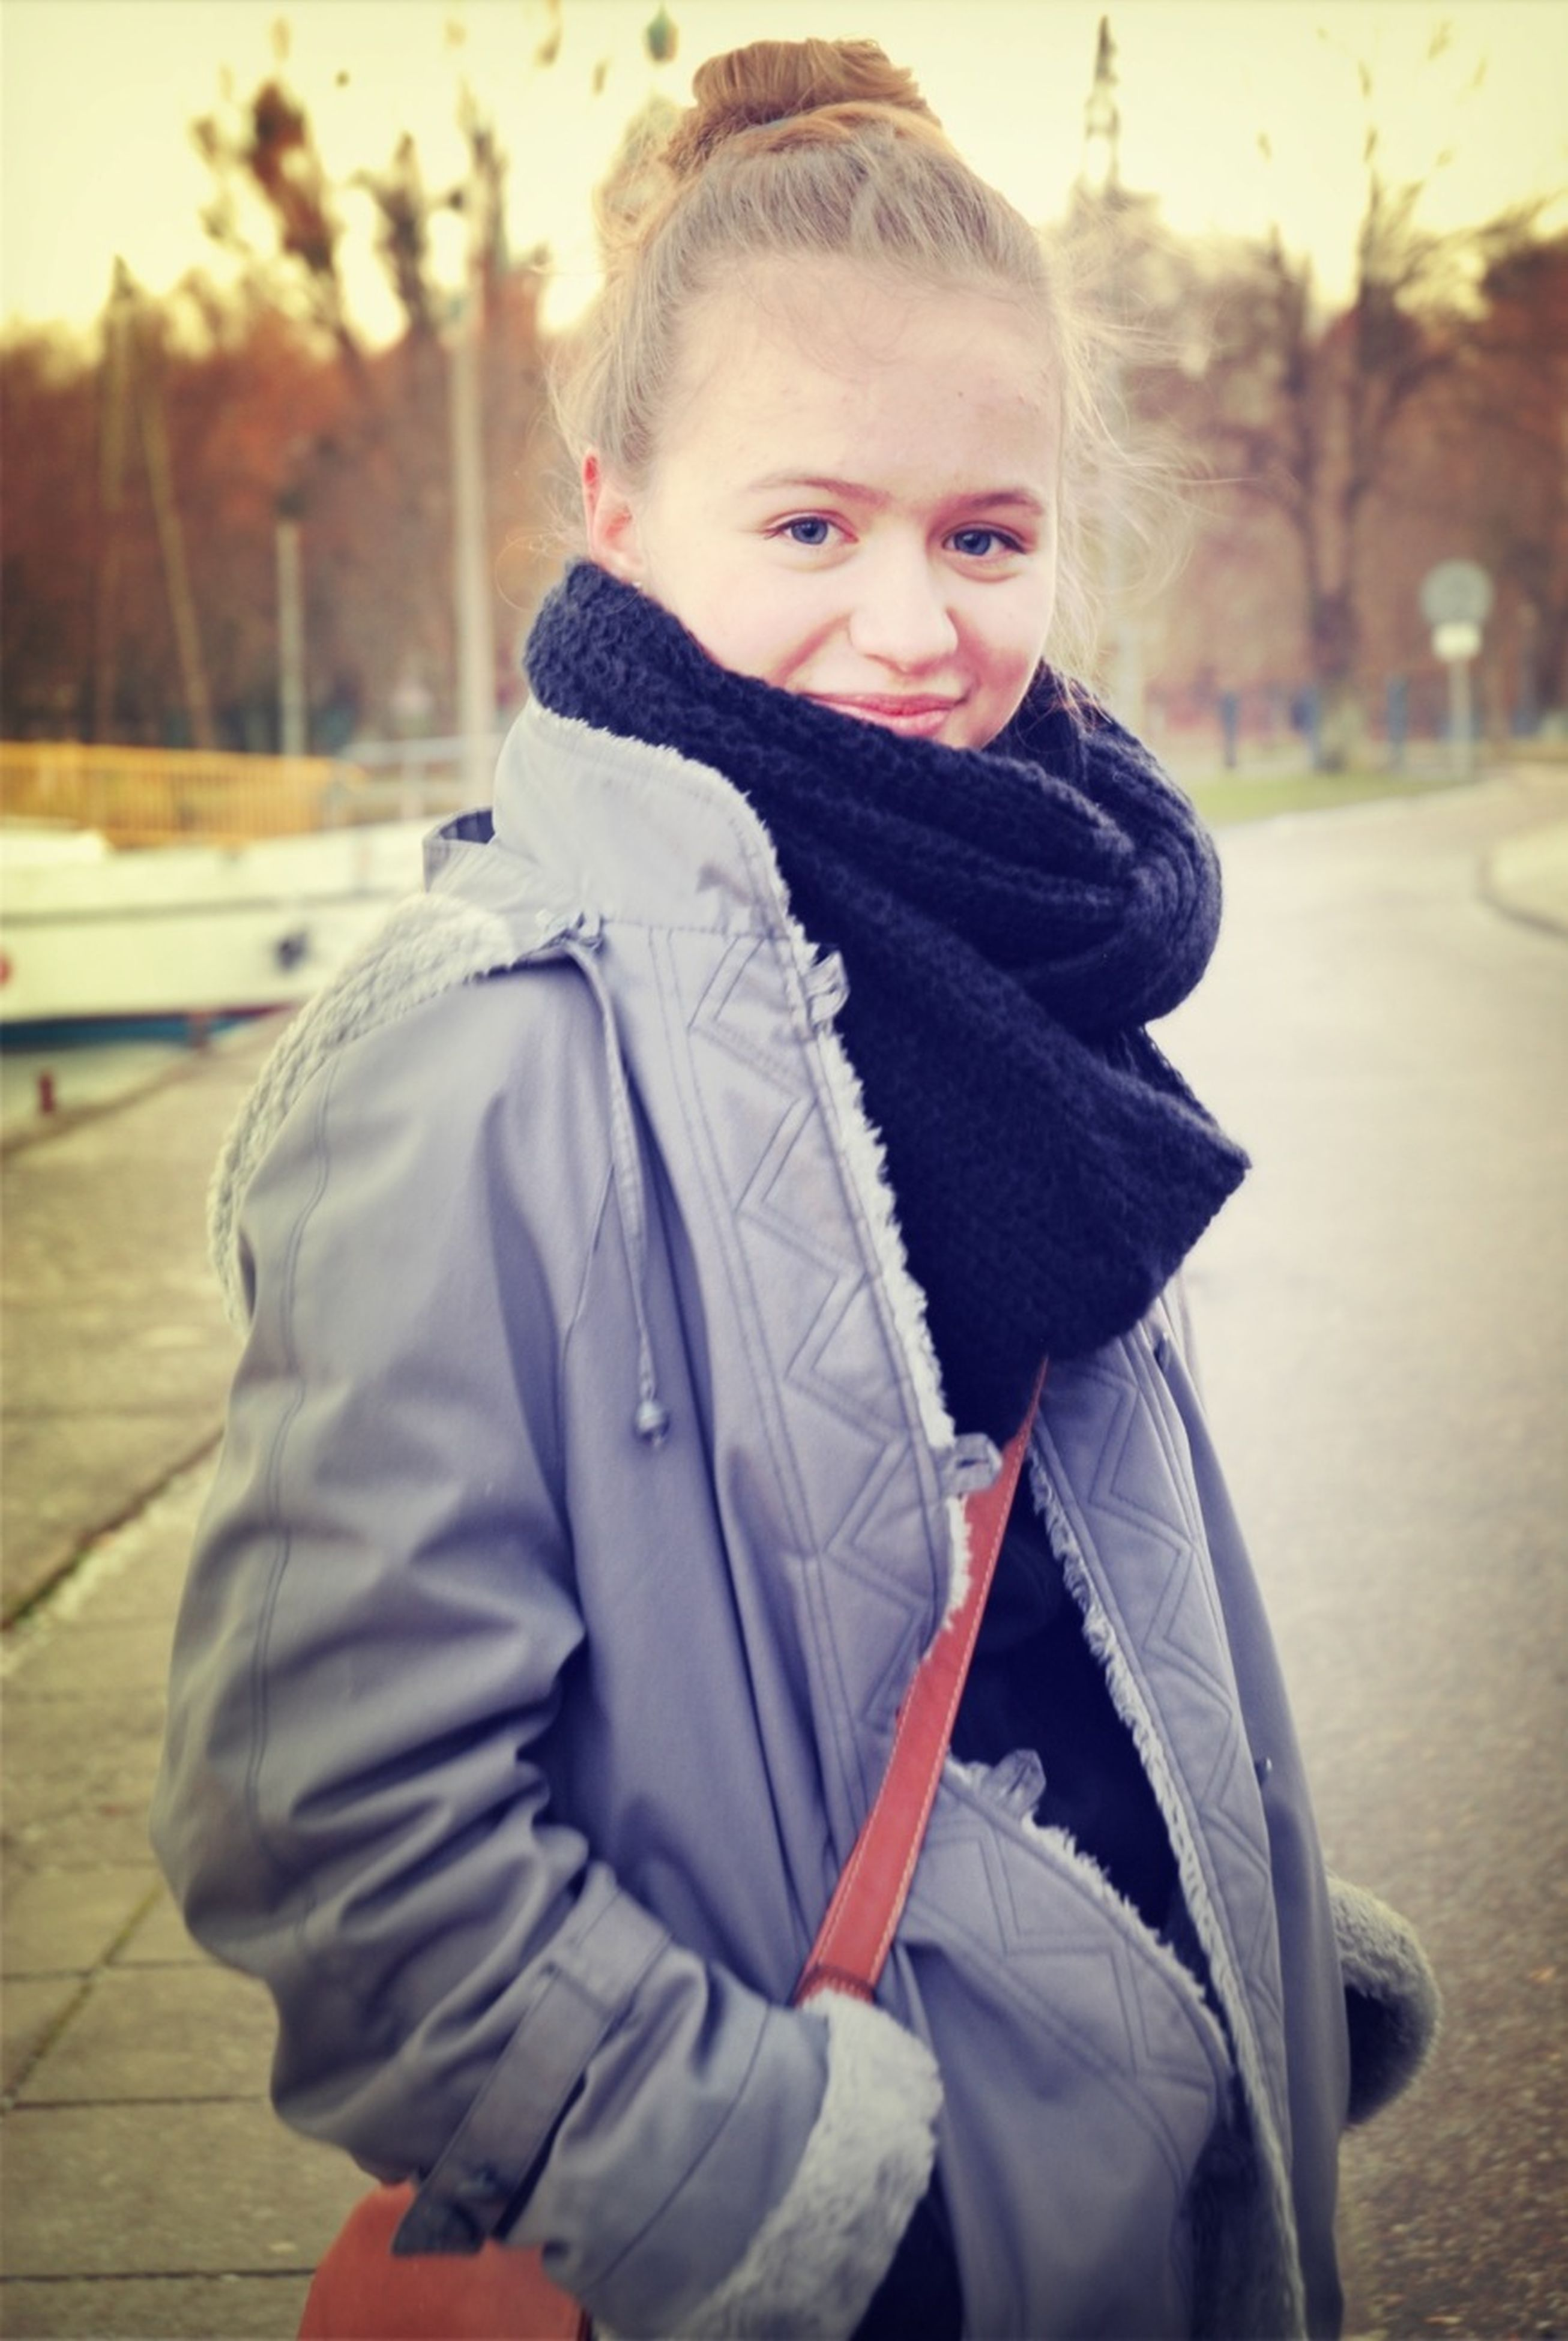 casual clothing, lifestyles, focus on foreground, leisure activity, warm clothing, person, jacket, front view, street, transportation, car, waist up, young adult, standing, looking at camera, sitting, three quarter length, incidental people